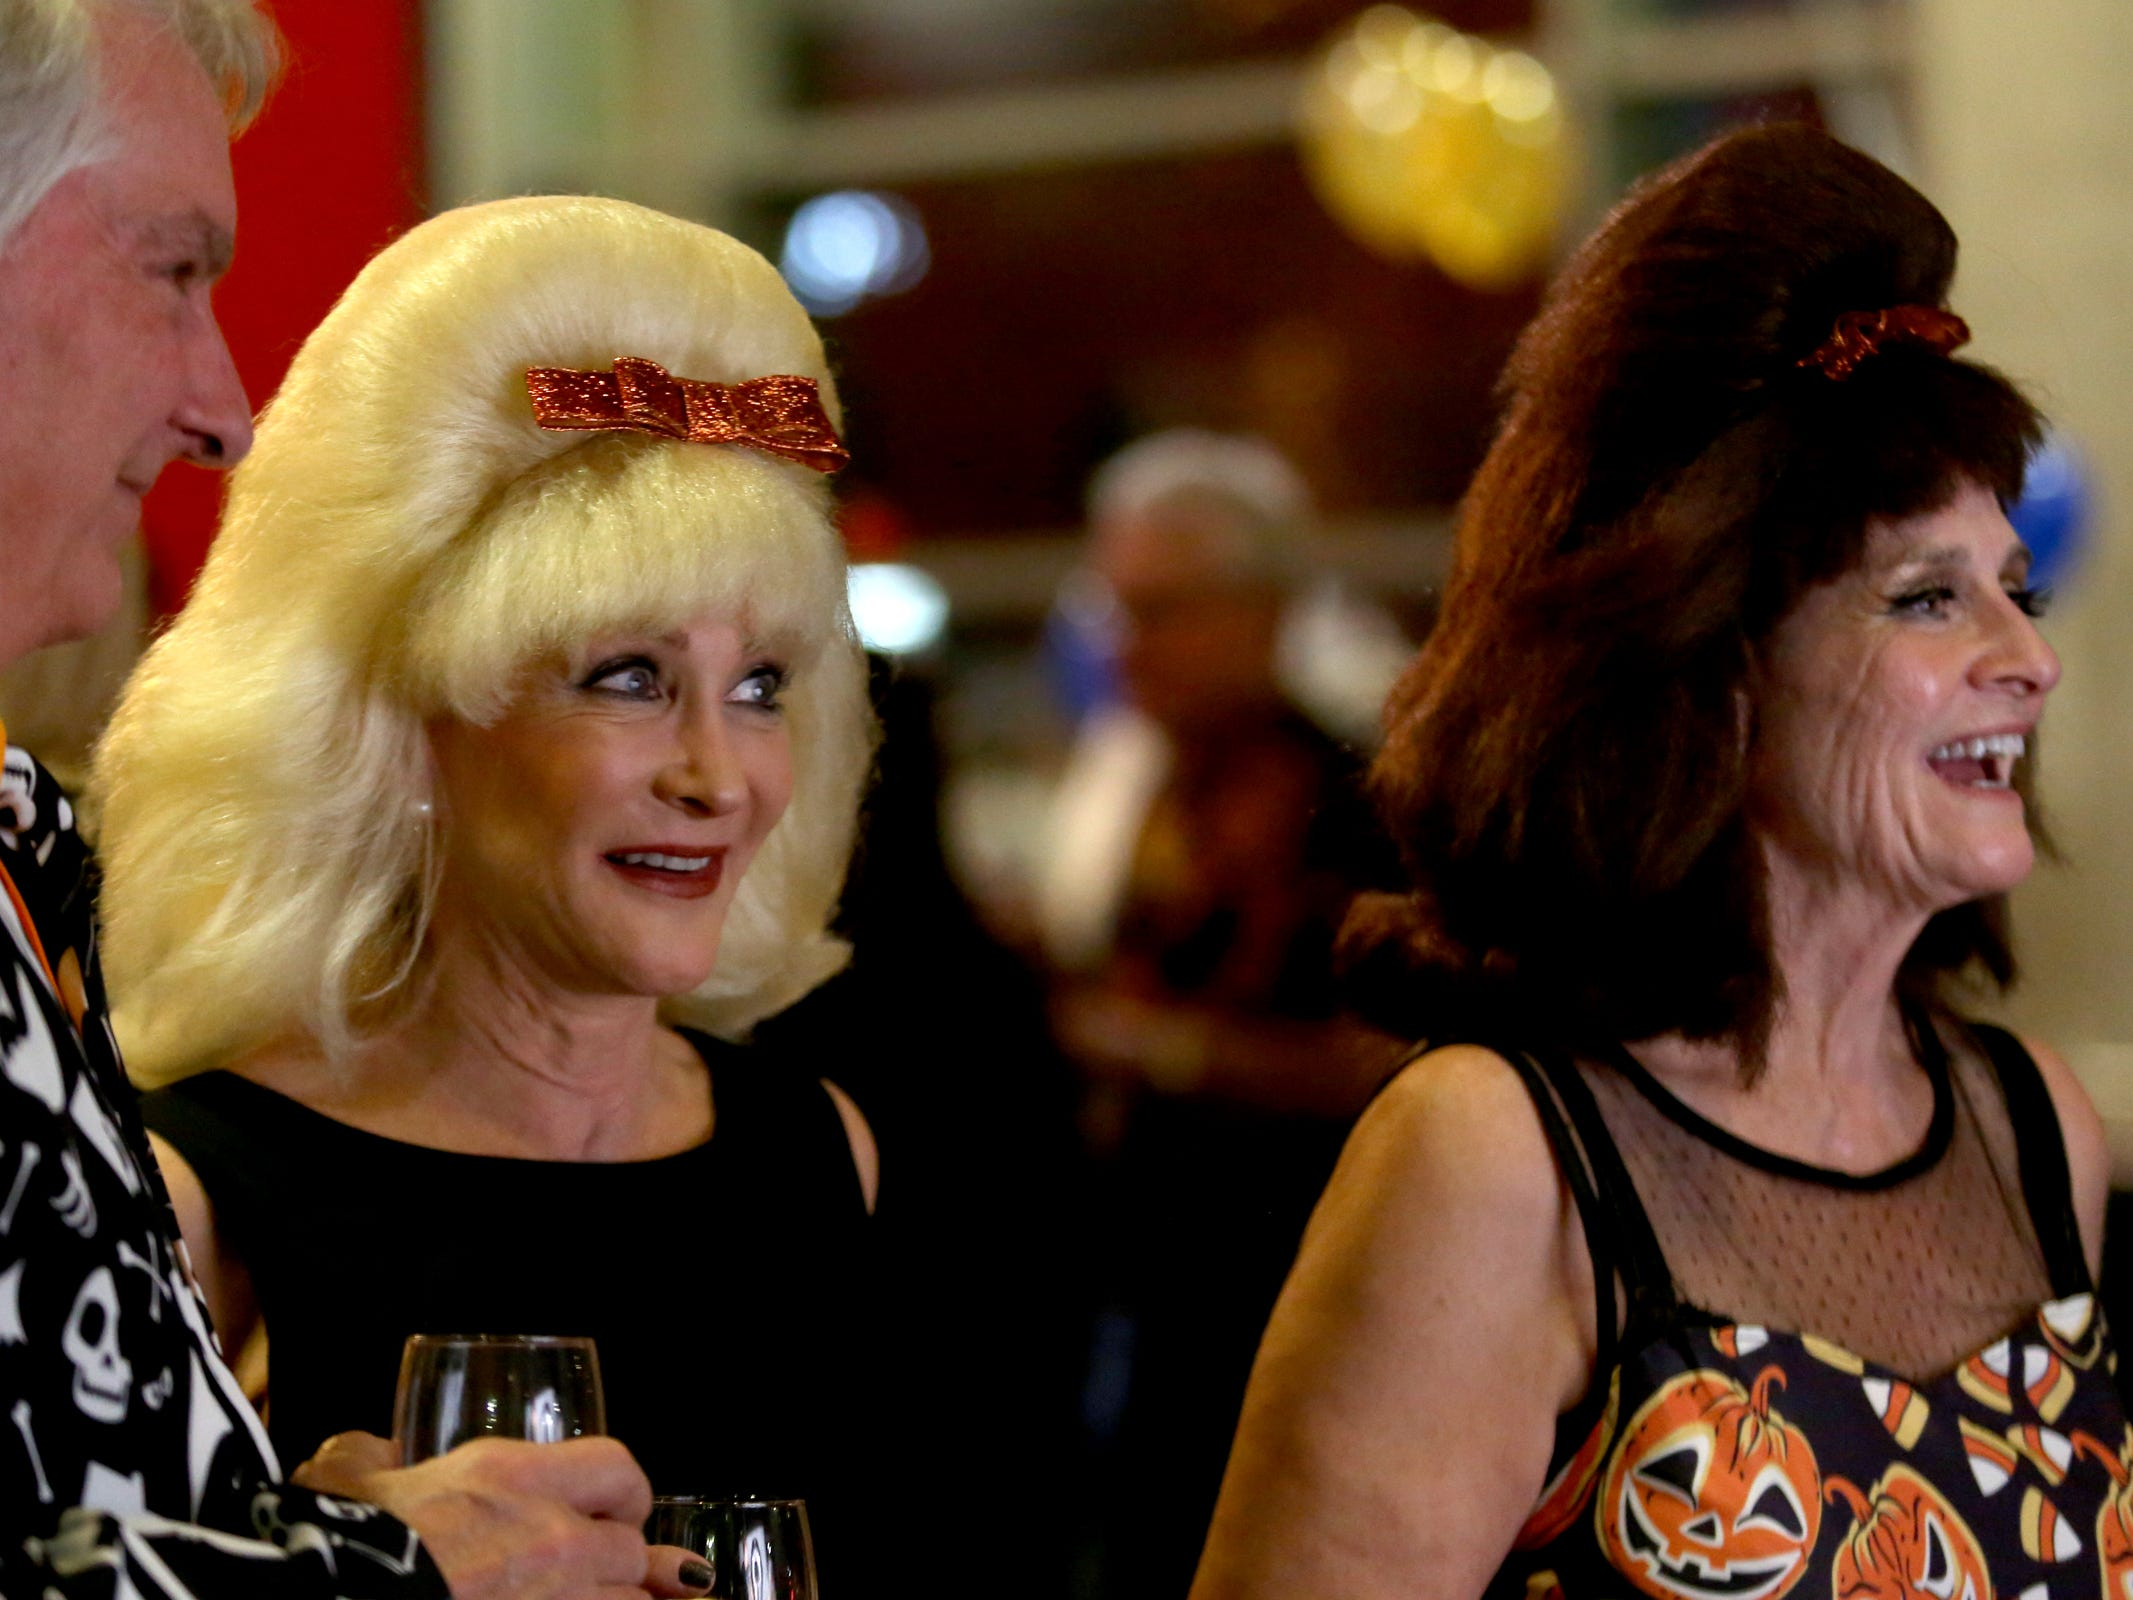 Merritt Mount, from left, of Olympia, Wash., Deb Fitz, of Seattle, Wash., and Fran Howe, of Gates, attend Bowser's Boo Bash, a fundraiser for the Willamette Humane Society, at the Salem Convention Center on Saturday, Oct. 27, 2018.